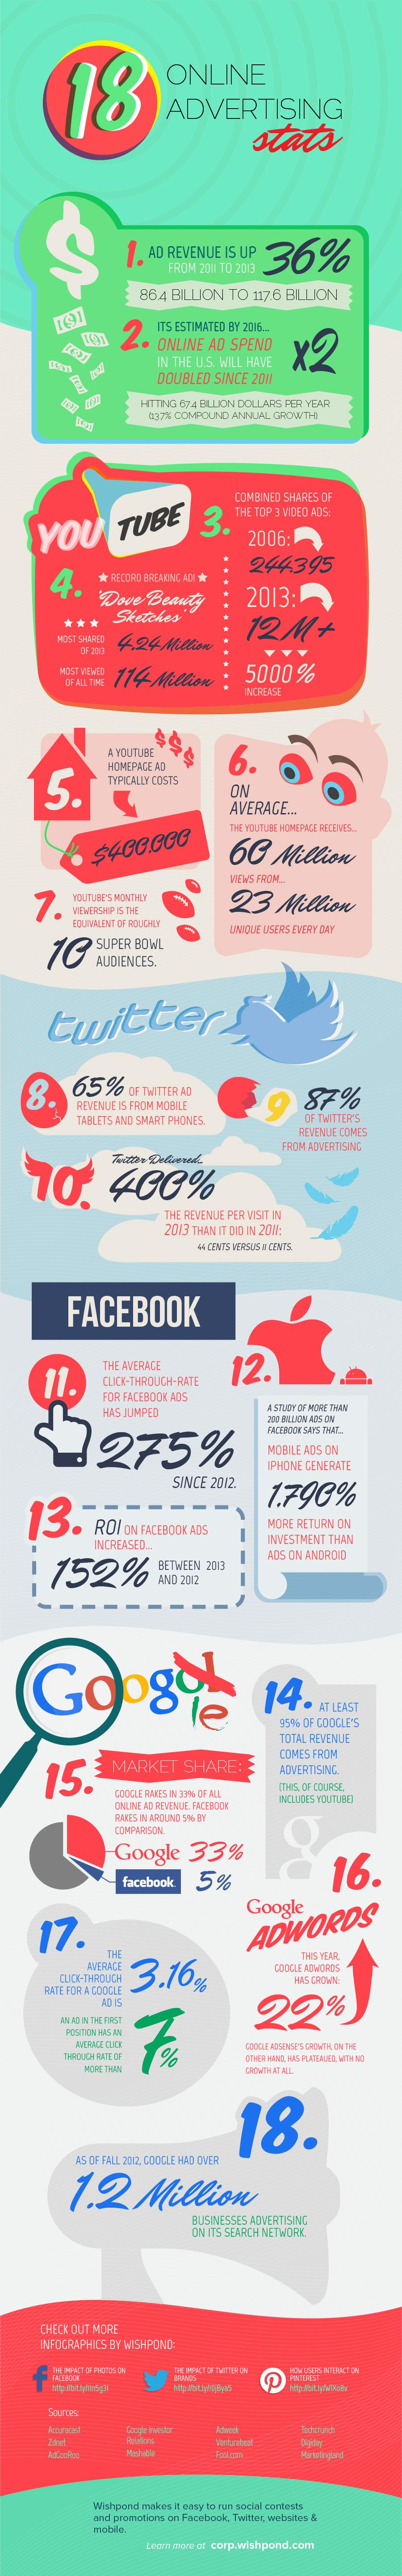 18 Online Advertising Stats from Big Brands 2014 [INFOGRAPHIC]